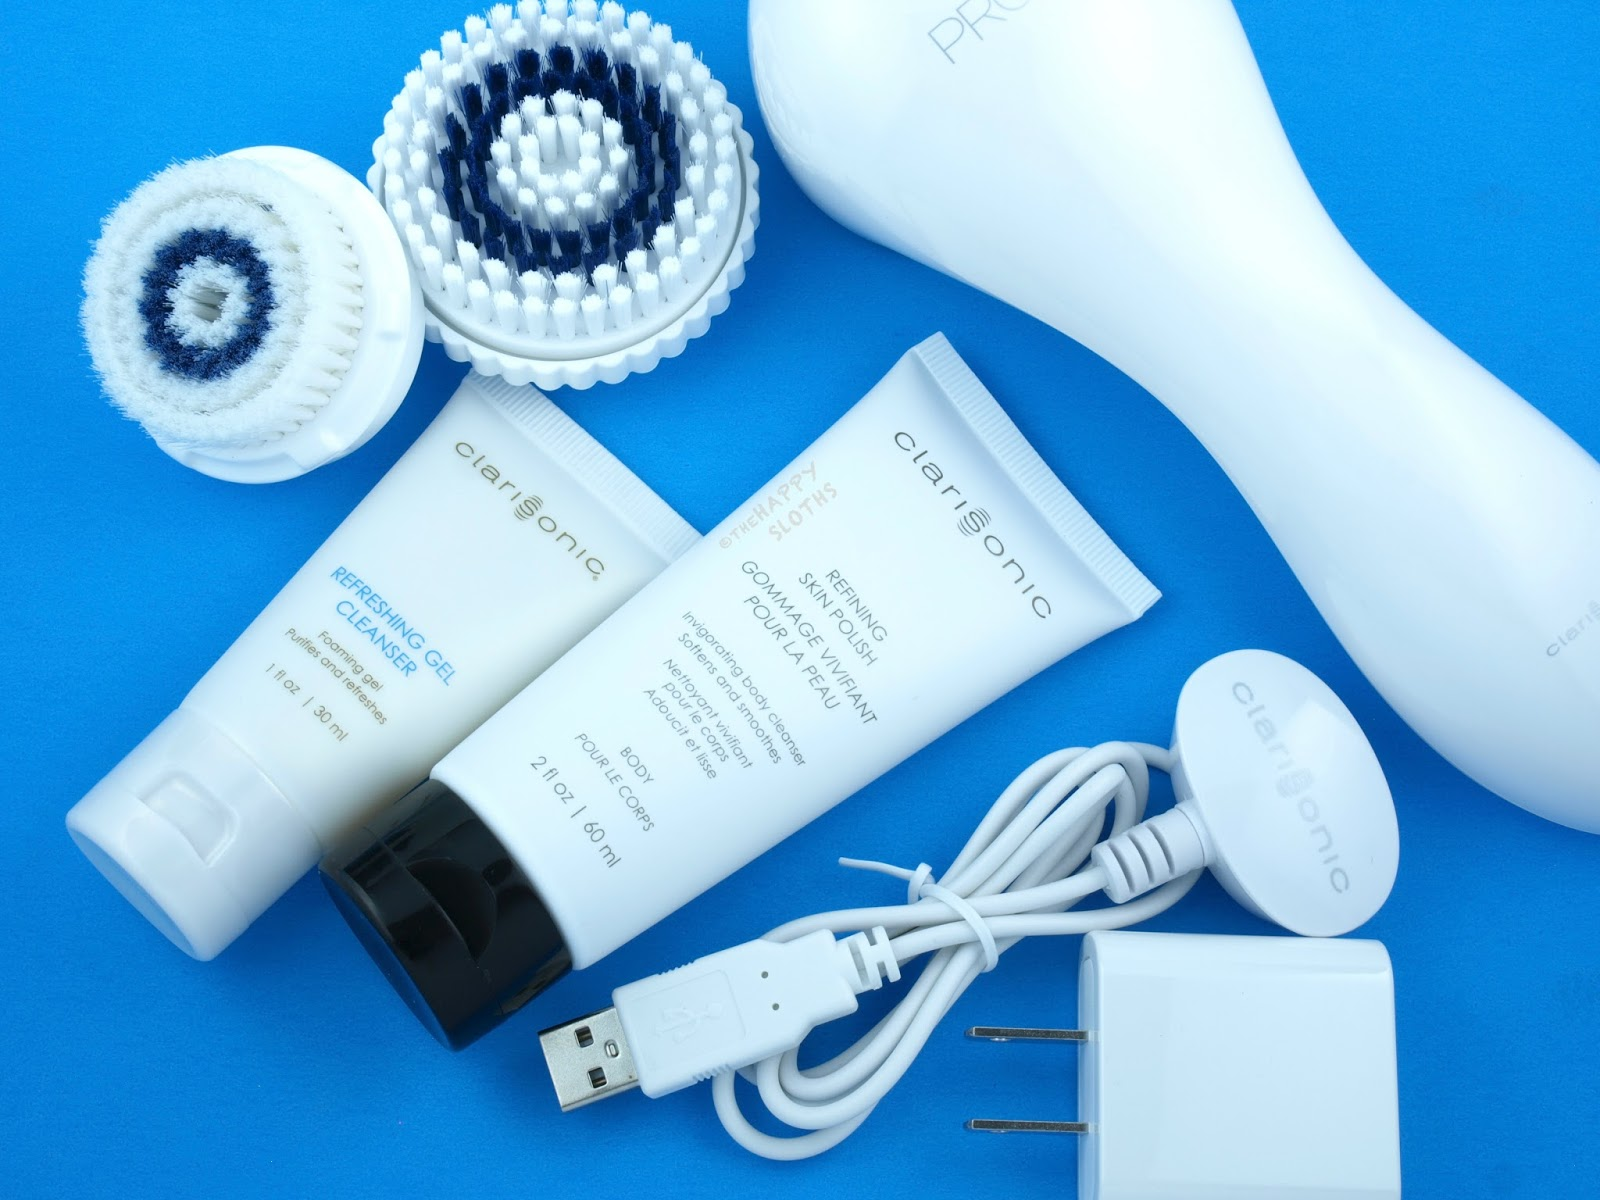 Clarisonic Smart Profile Review